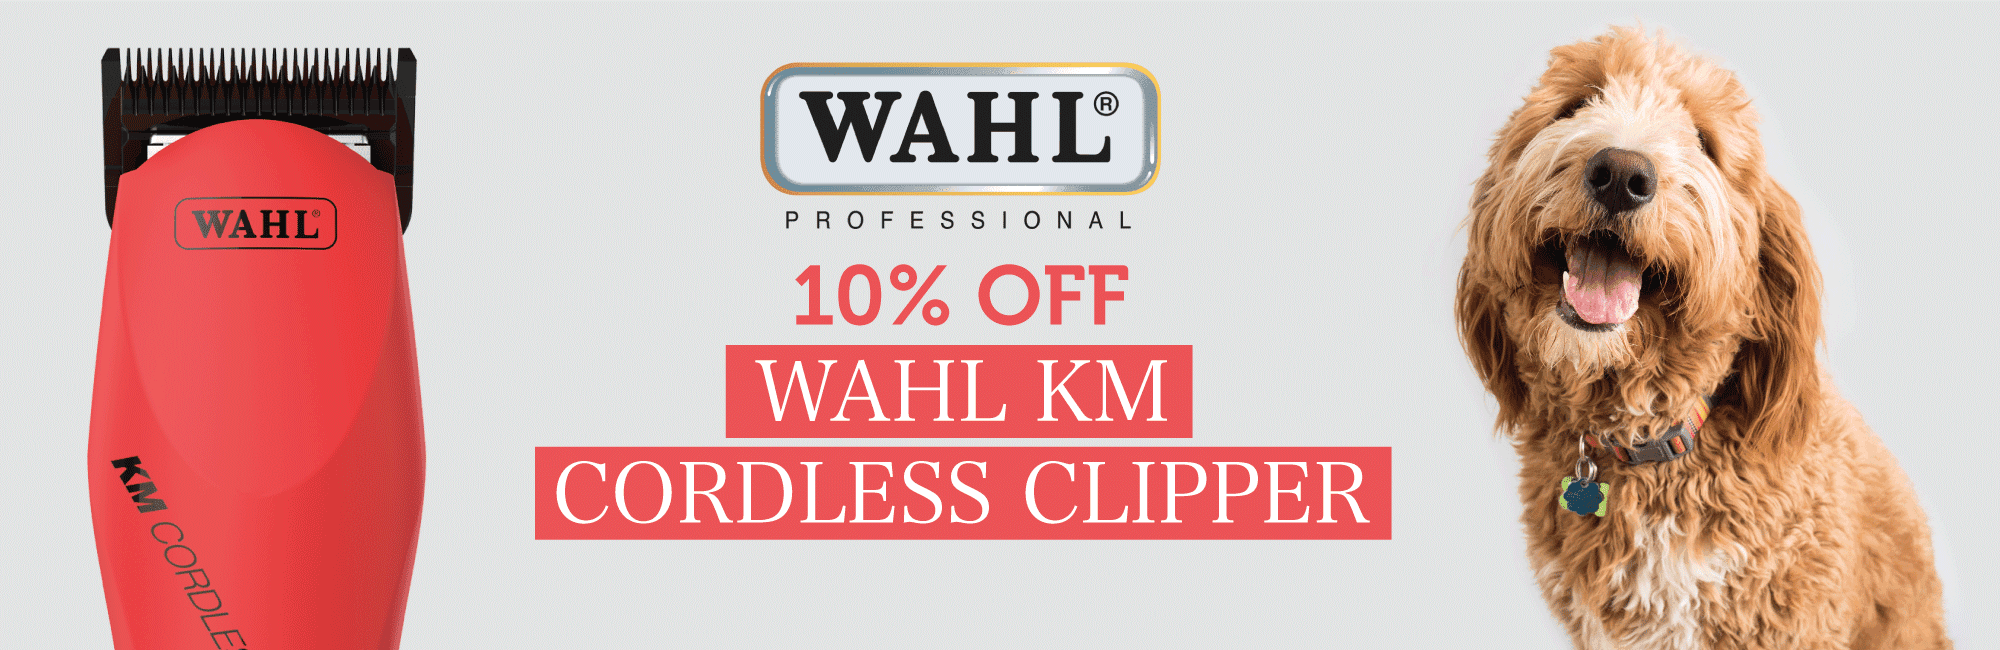 10% Off Wahl KM Cordless Clipper